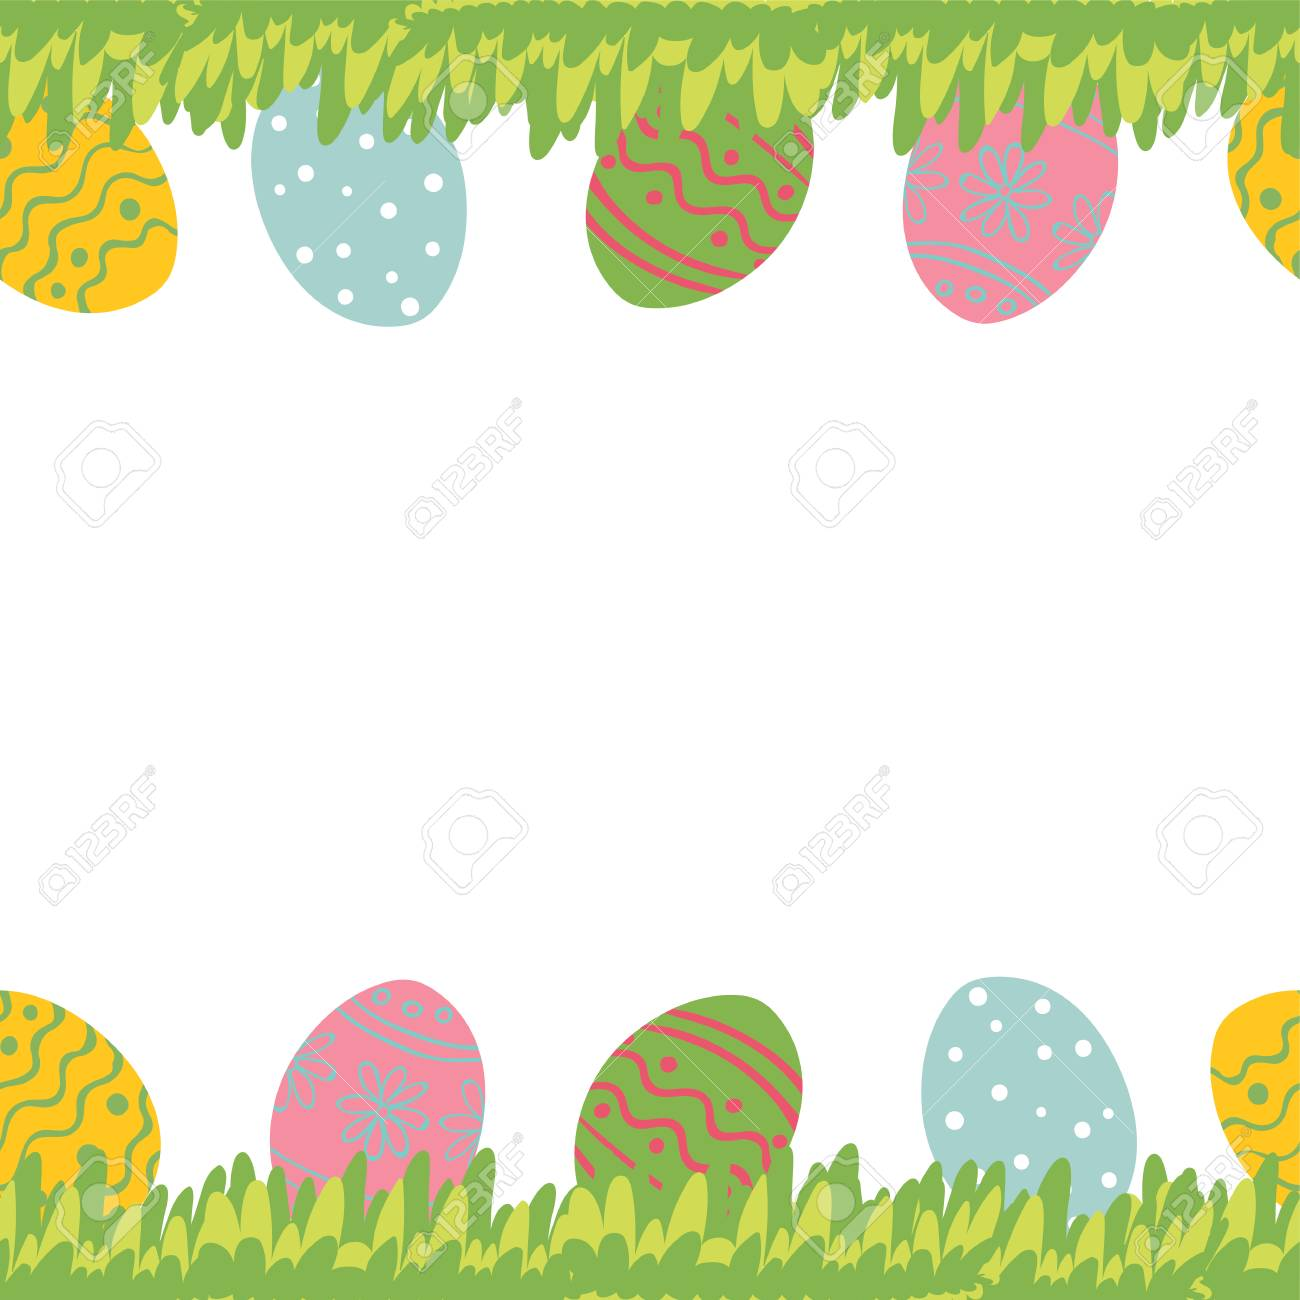 Easter greeting card with seamless floral border eggs and leaves easter greeting card with seamless floral border eggs and leaves perfect for spring holiday m4hsunfo